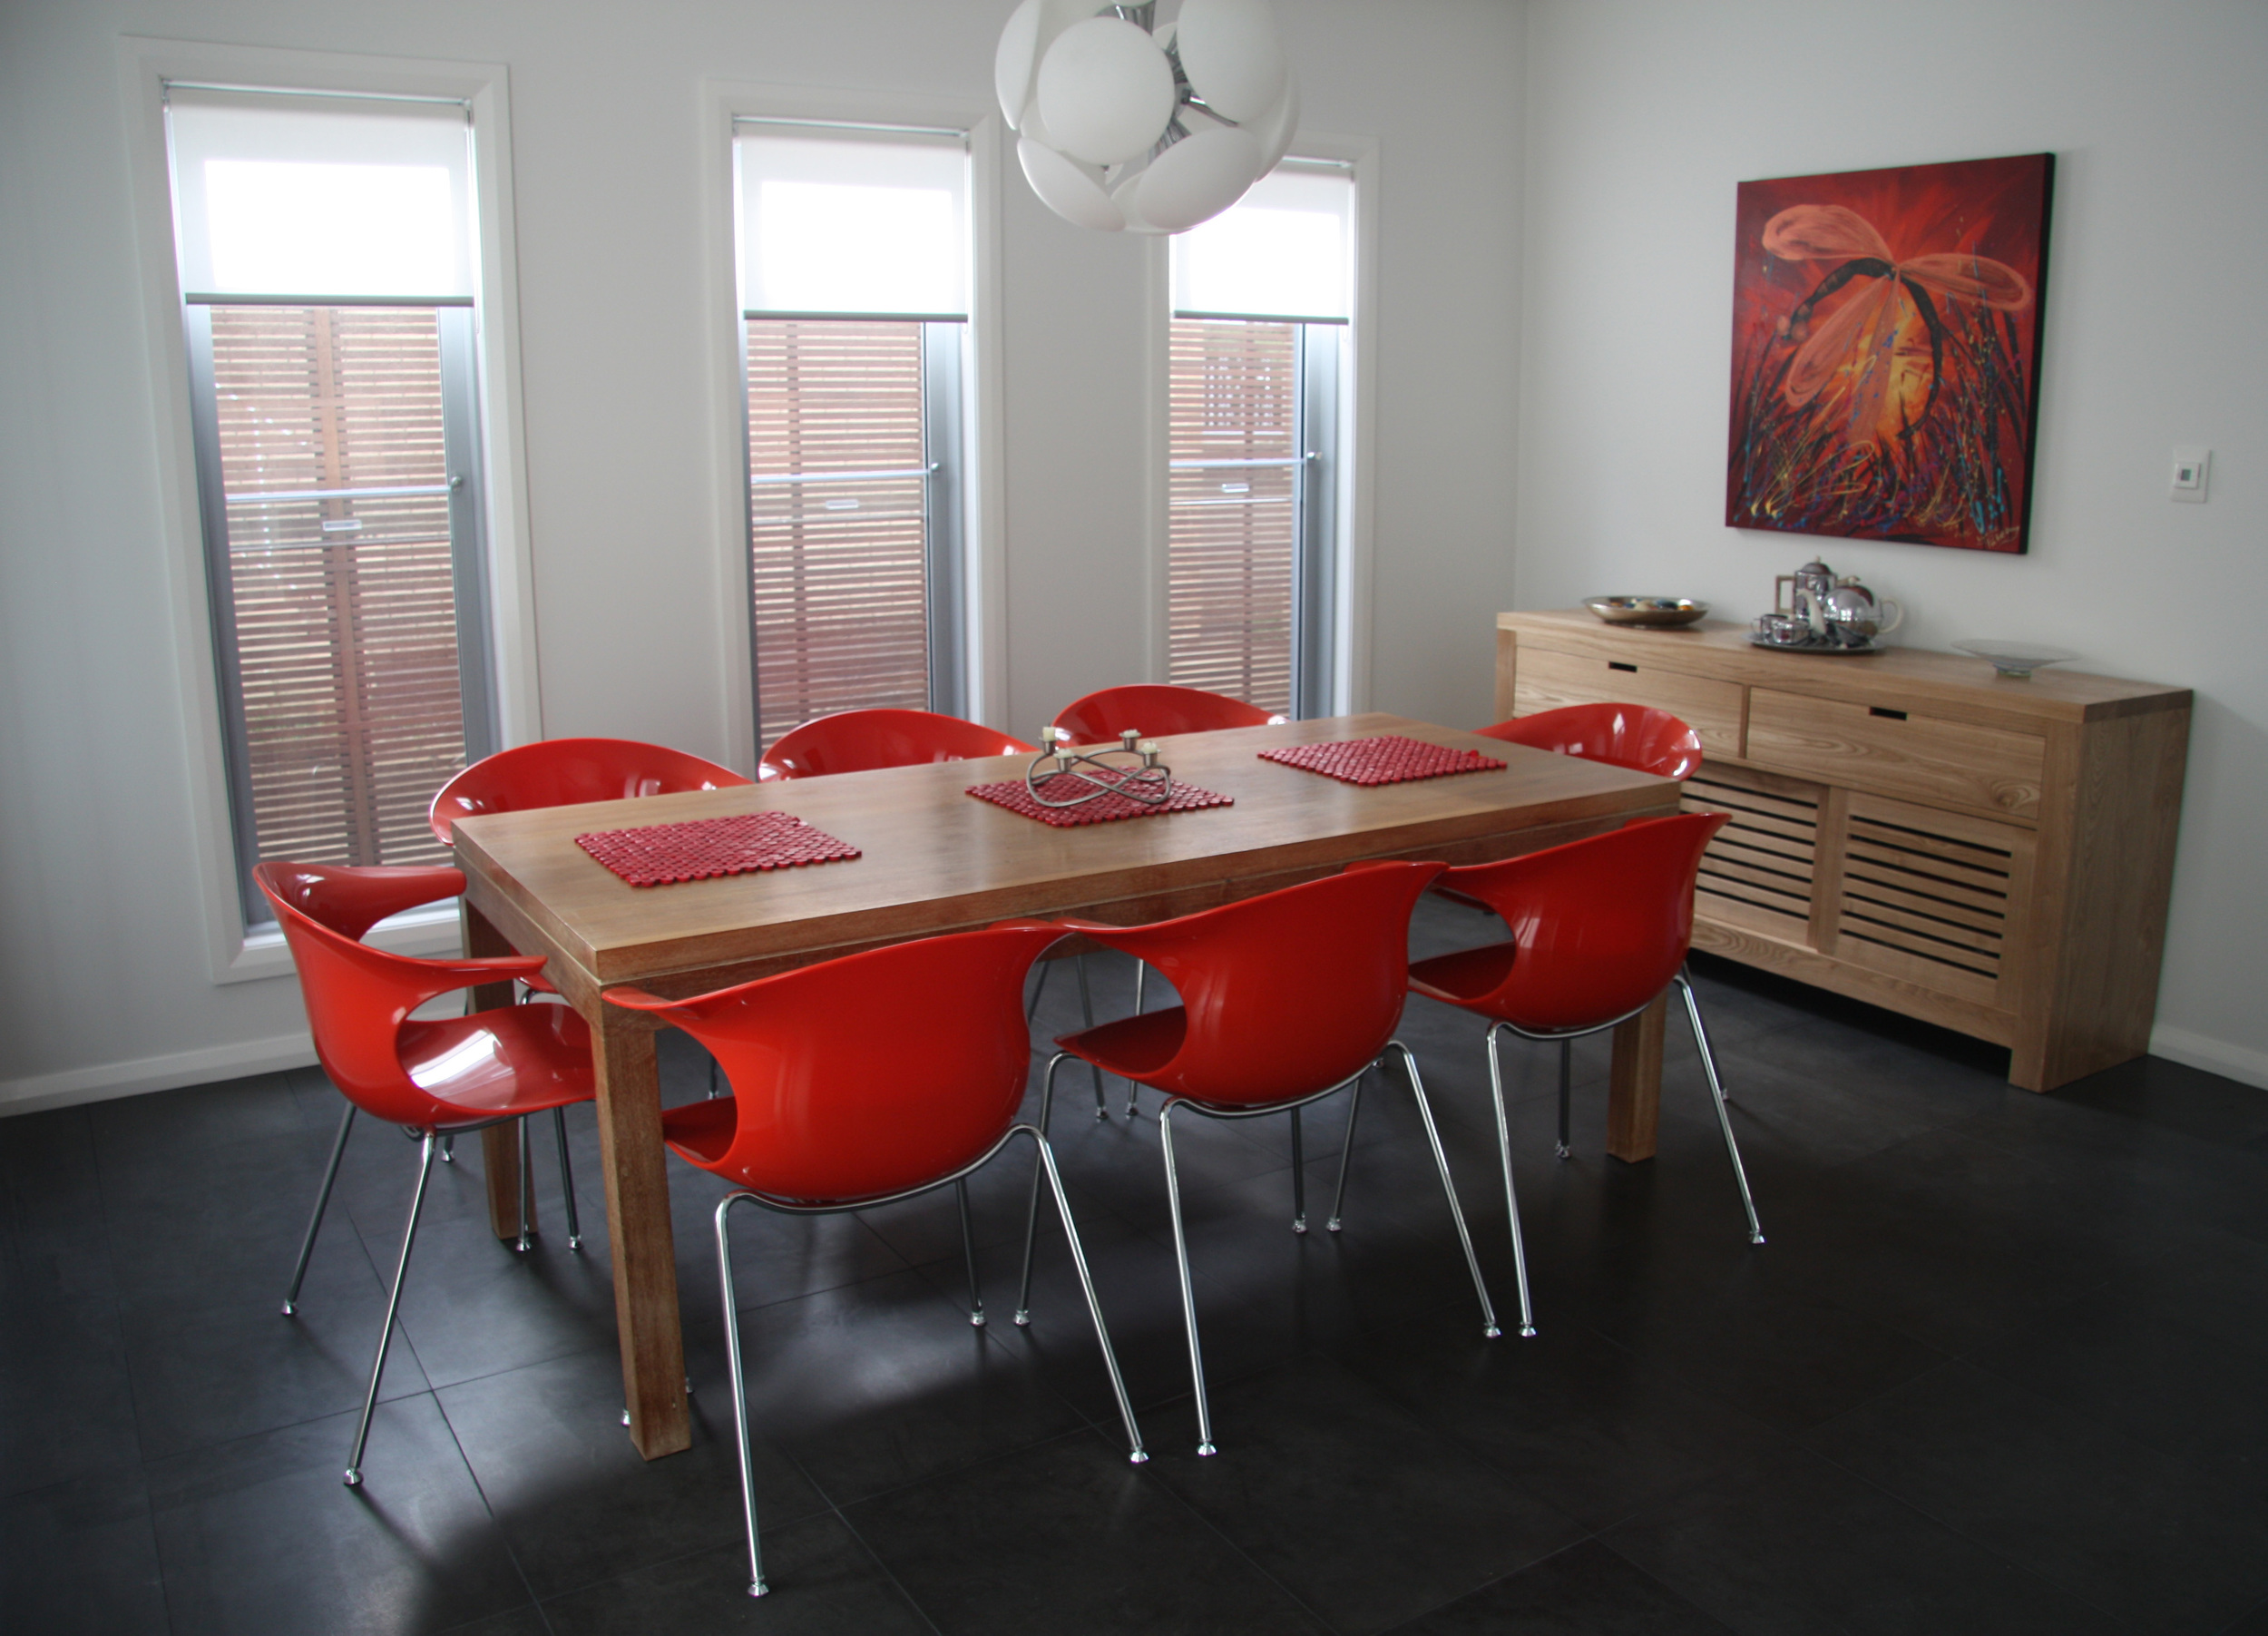 This image is one taken from a beautifully designed home with bluestone throughout - dining room, kitchen, living room and hallway.The result is stunning bright colours e.g. red being used to contrast the formality of the dark grey bluestone.